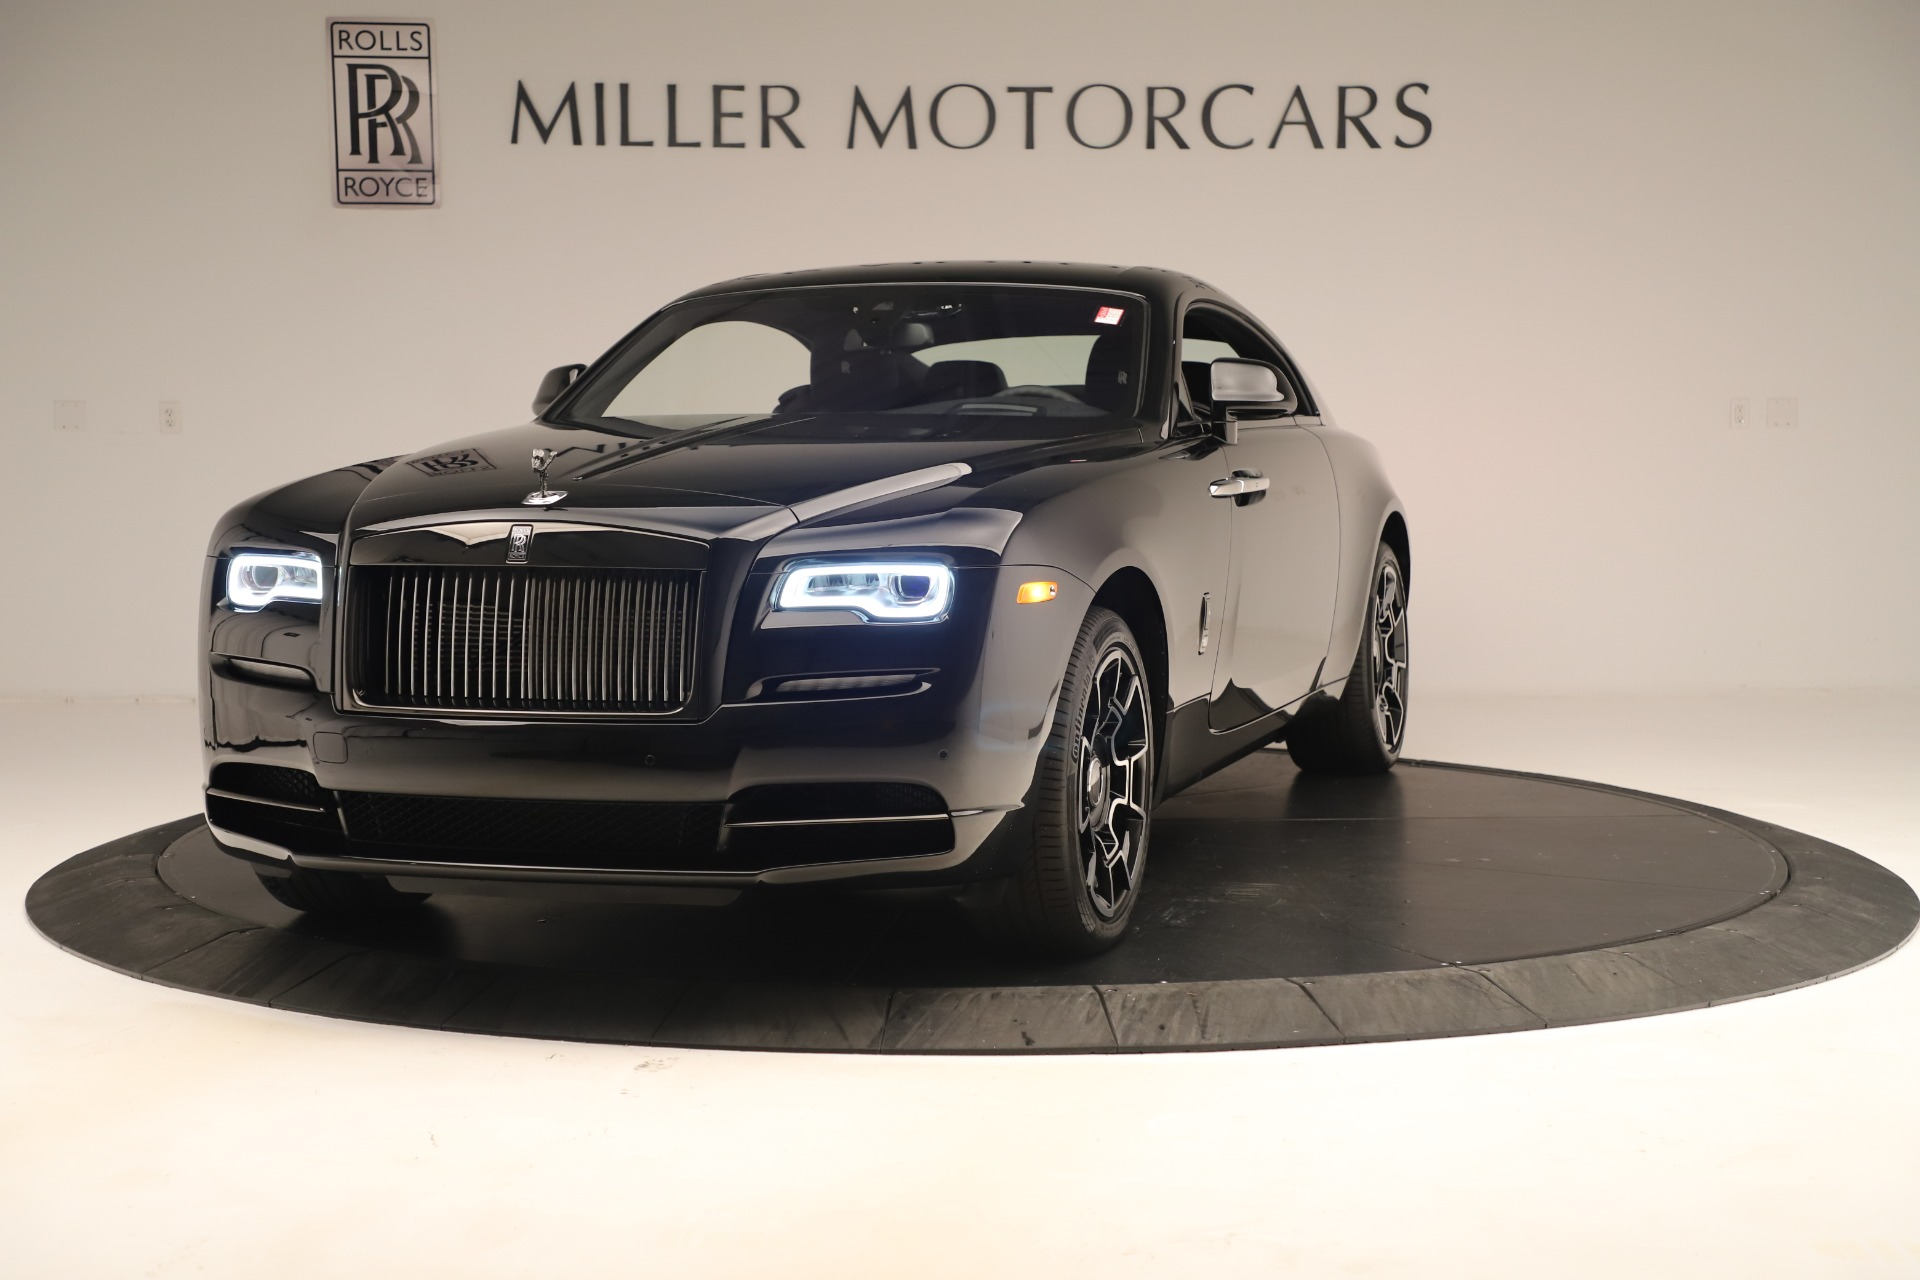 New 2020 Rolls-Royce Wraith Black Badge for sale Sold at Aston Martin of Greenwich in Greenwich CT 06830 1